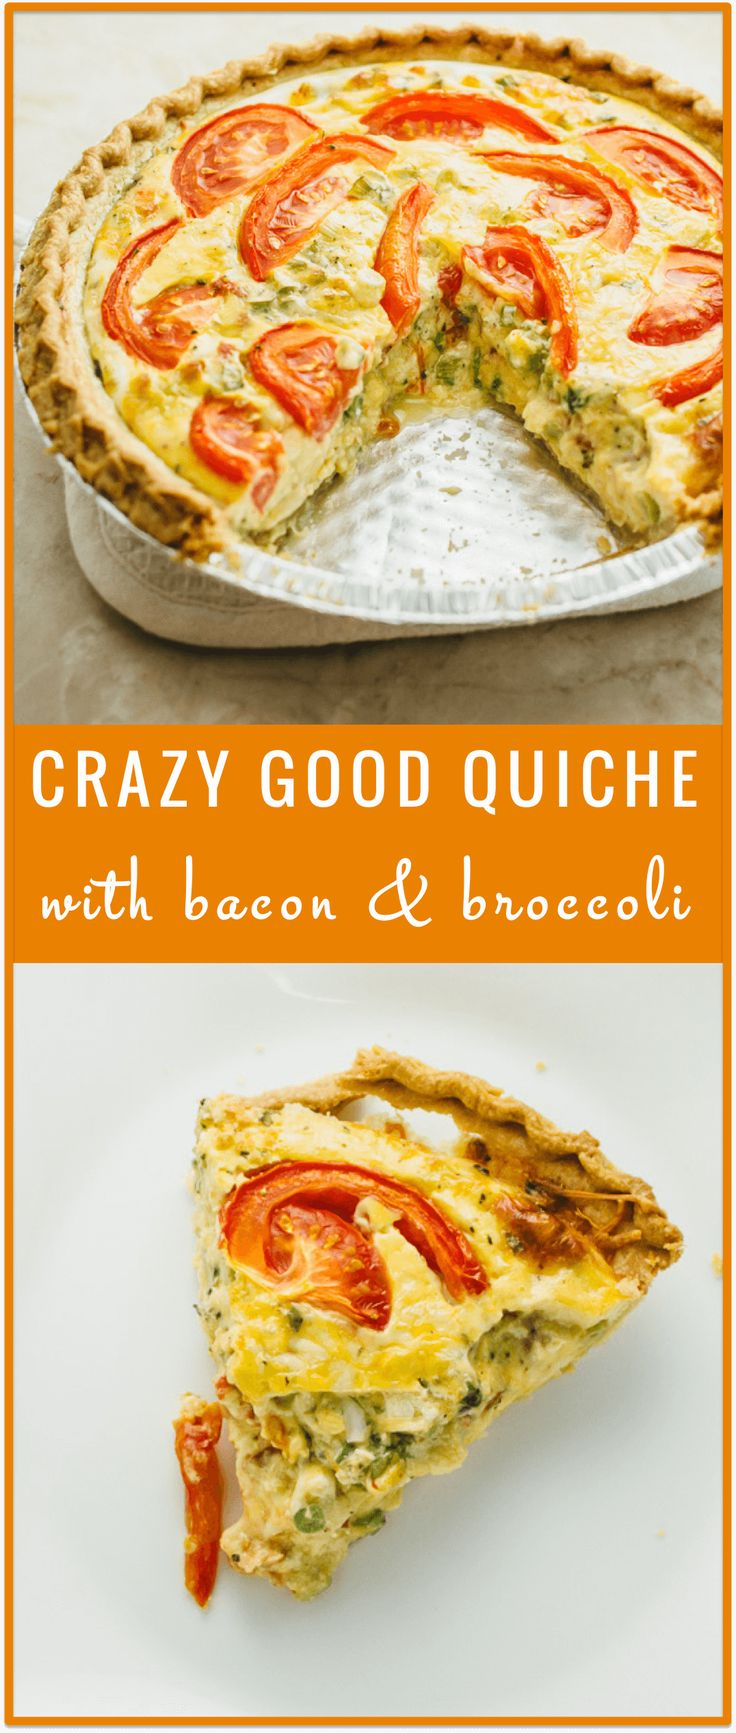 This is a crazy good quiche with crispy bacon, fresh scallions, tender broccoli, and tomato slices. You'll love this easy and delicious meal!